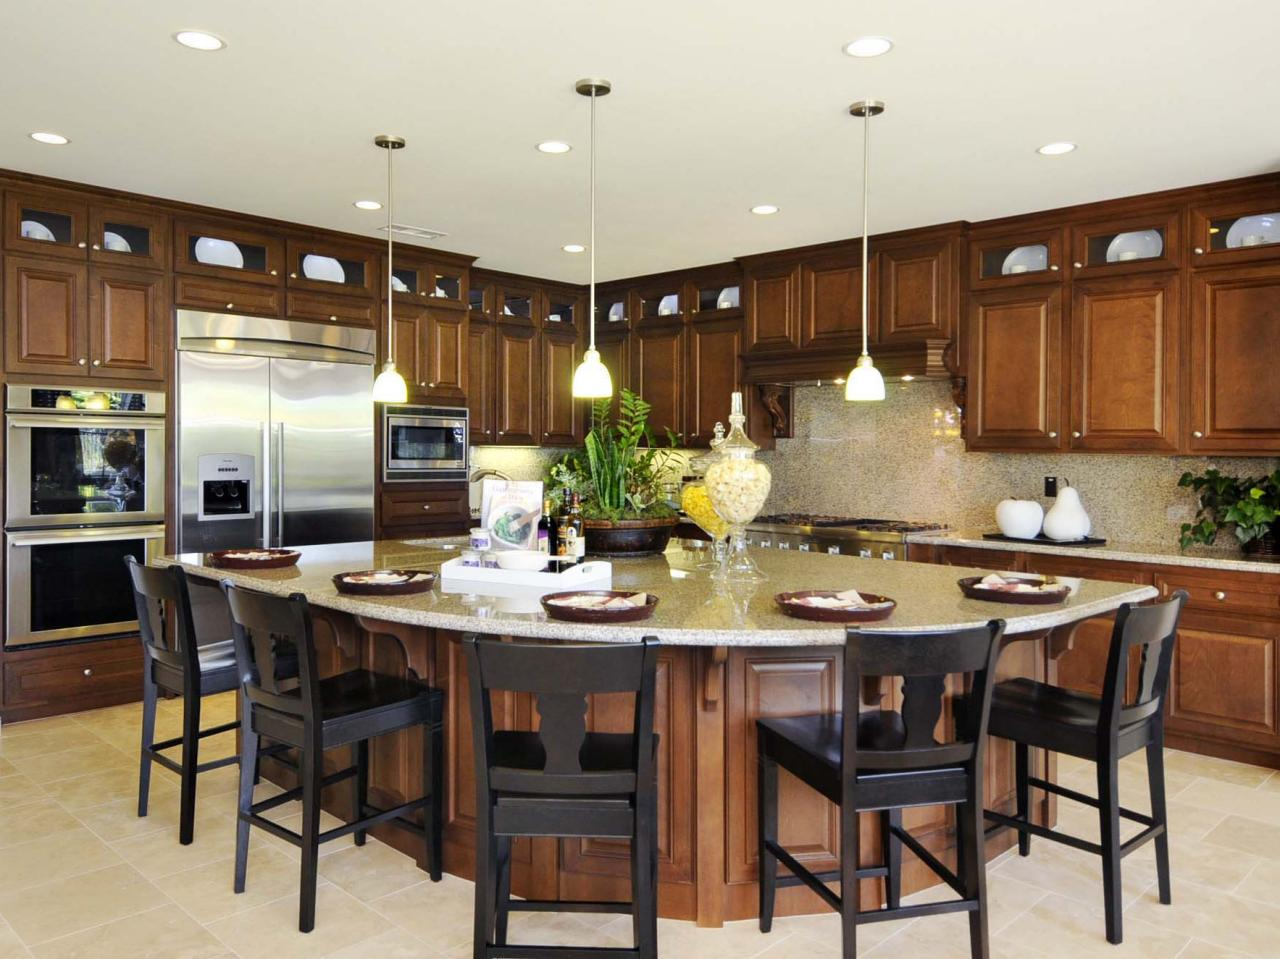 Chic Kitchen Island With a Breakfast Bar kitchen islands with breakfast bar